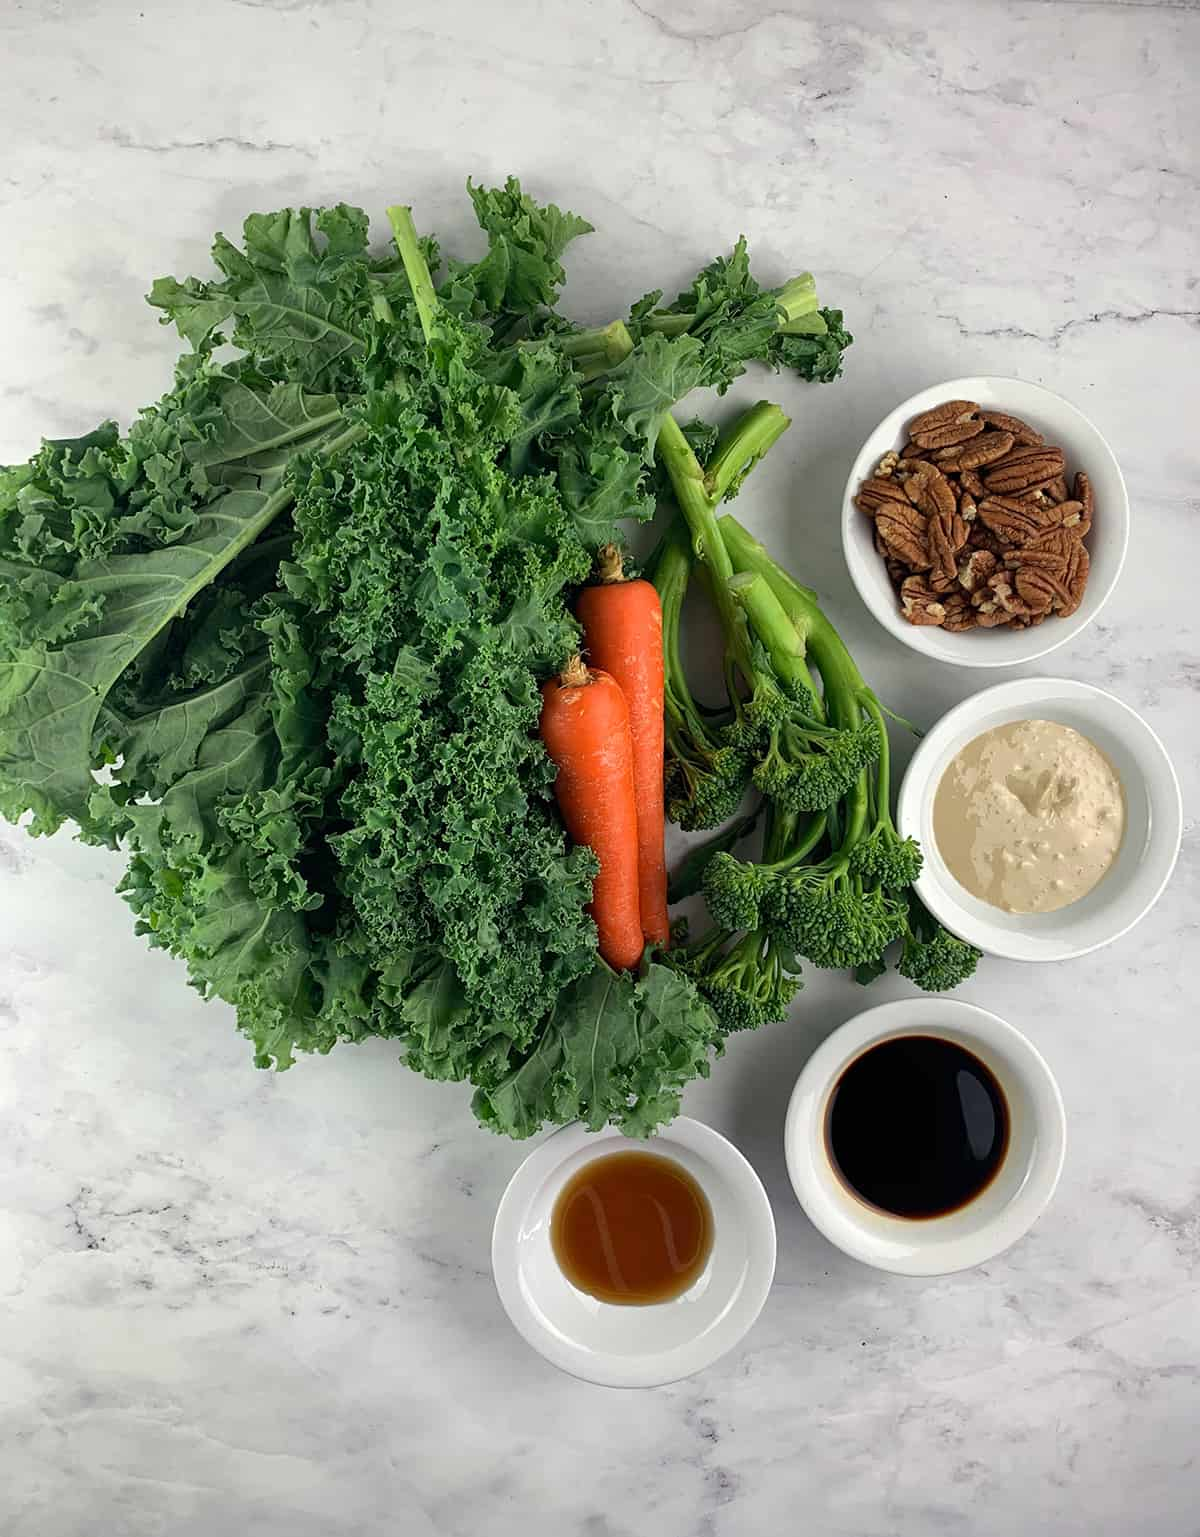 INGREDIENTS FOR KALE AND BROCCOLI SALAD